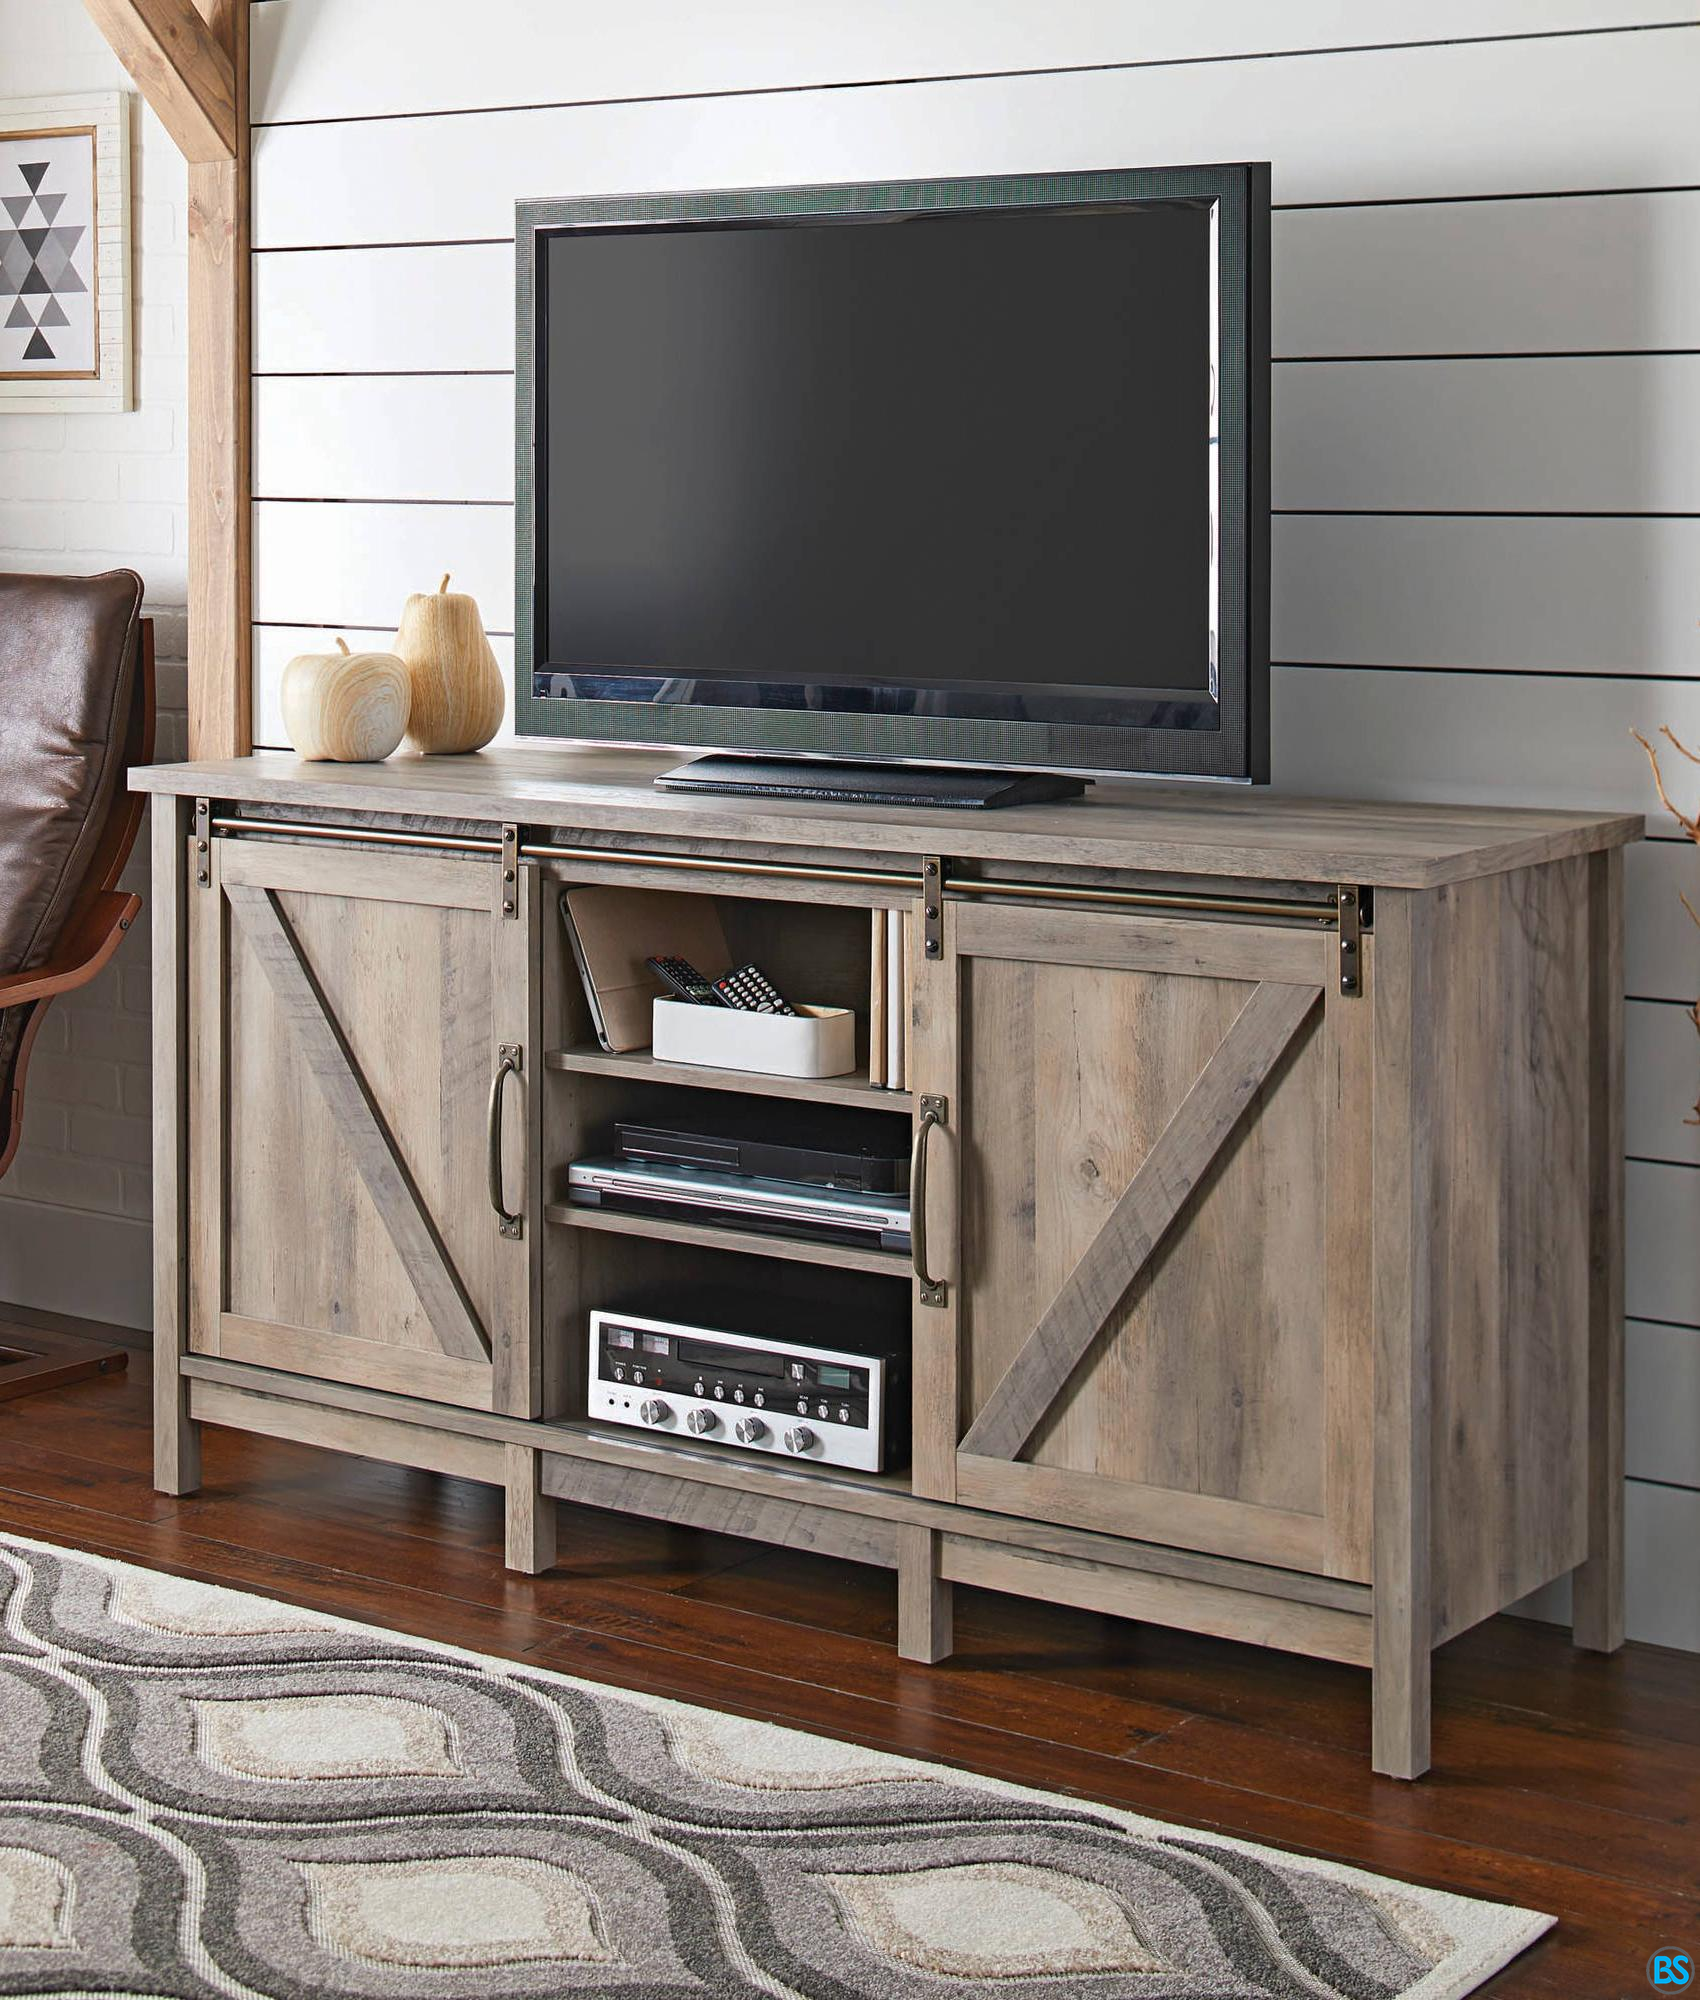 40fd377273fcd39833a4cee1078e7a57 - Better Homes And Gardens Tv Stand Rustic